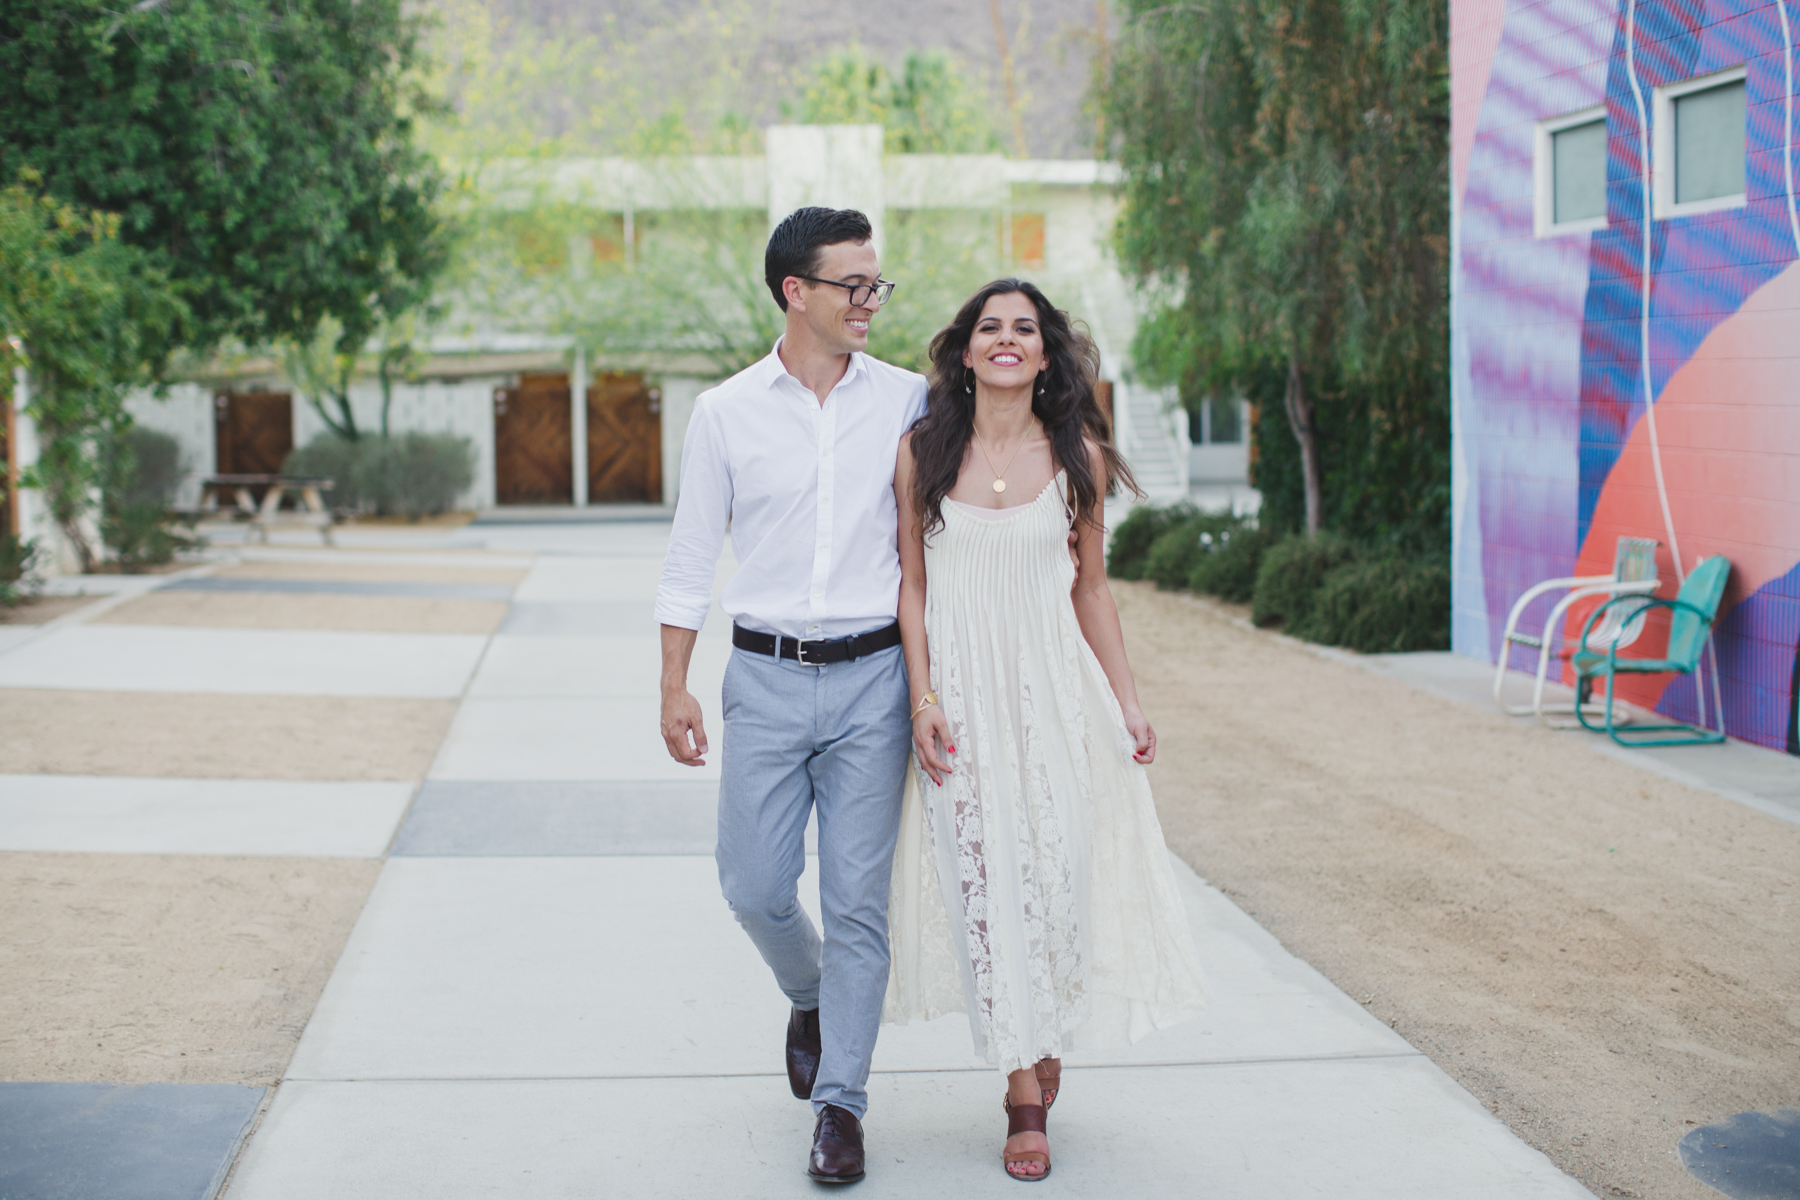 All_Days_Wonder_Palm_Springs_Engagement-53.jpg